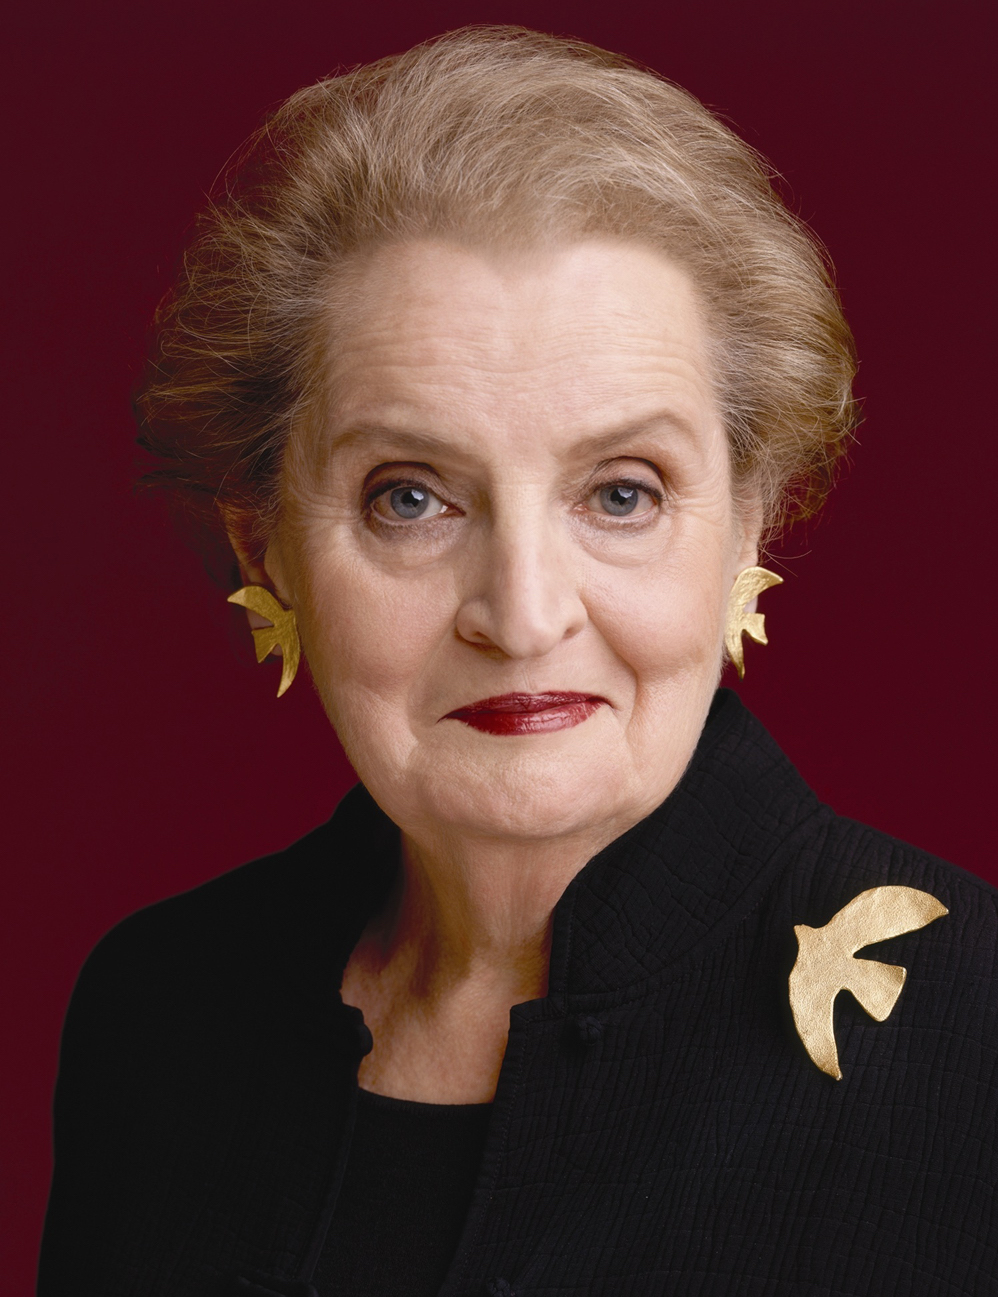 Madeleine Albright, photo by Timothy Greenfield Sanders